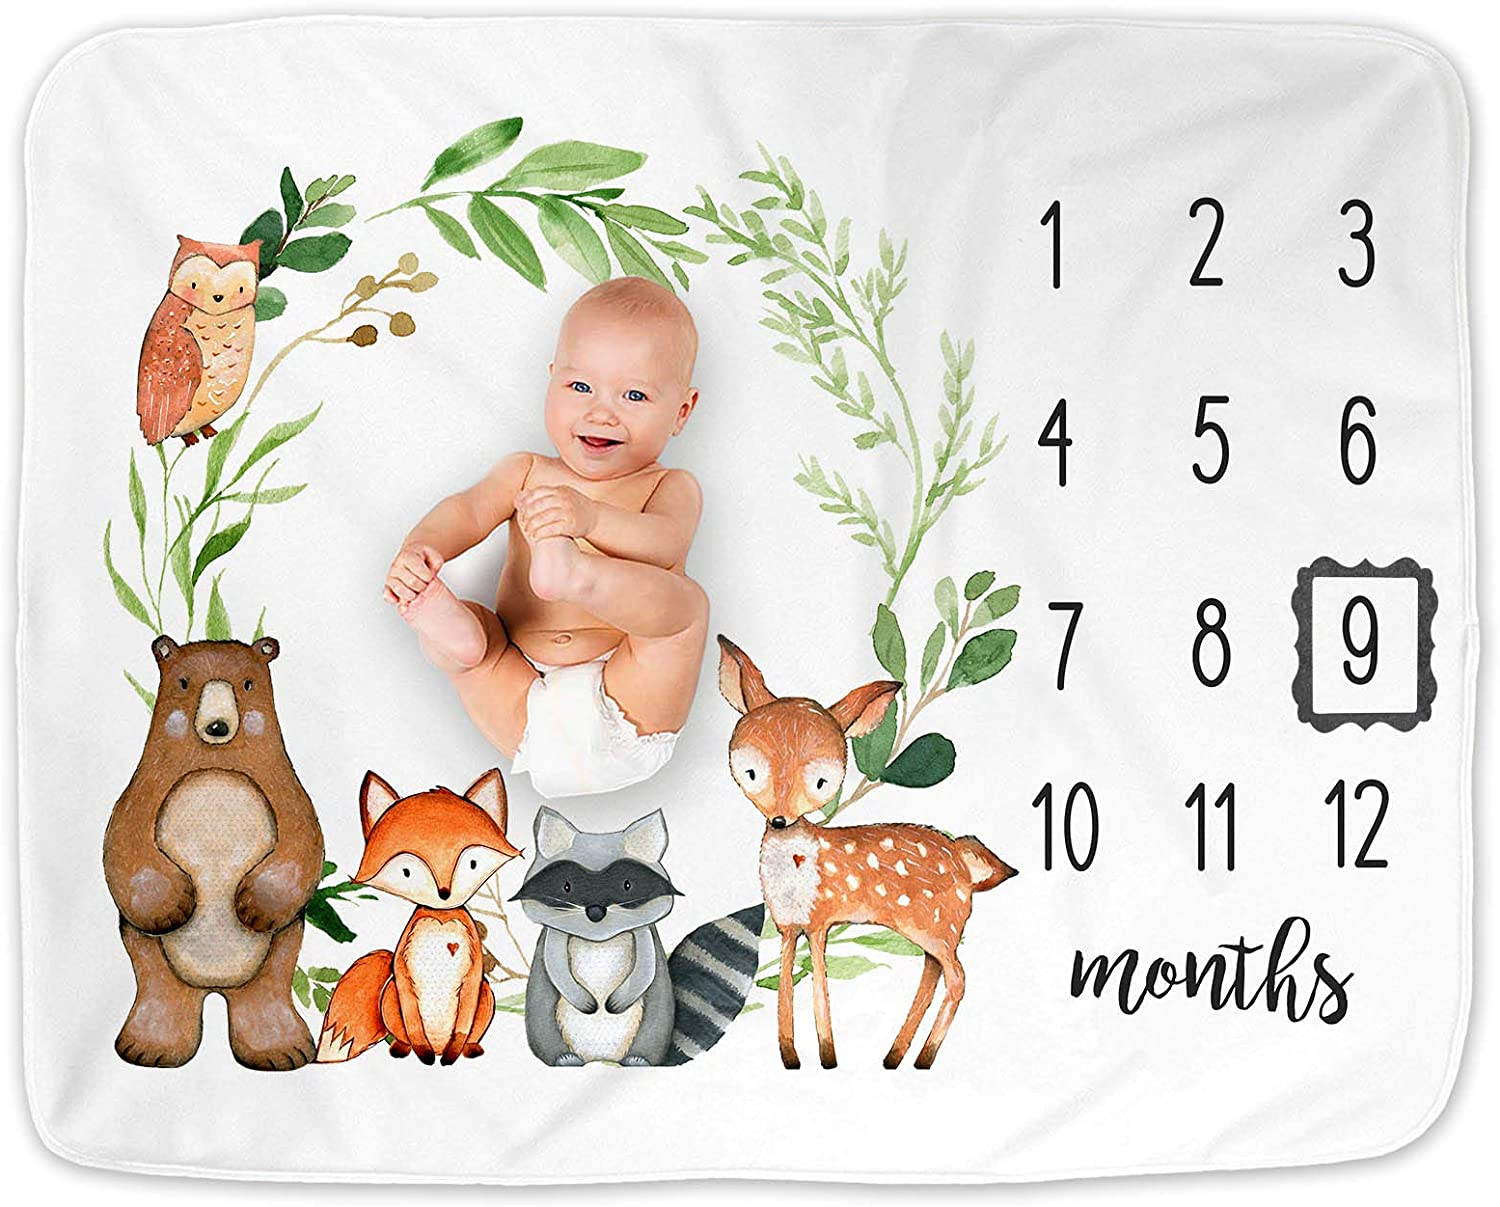 Woodland Baby Monthly Milestone Blanket, Woodland Animals Baby Growth Chart Monthly Blanket, Woodland Forest Nursery Decor, Includes Marker (50